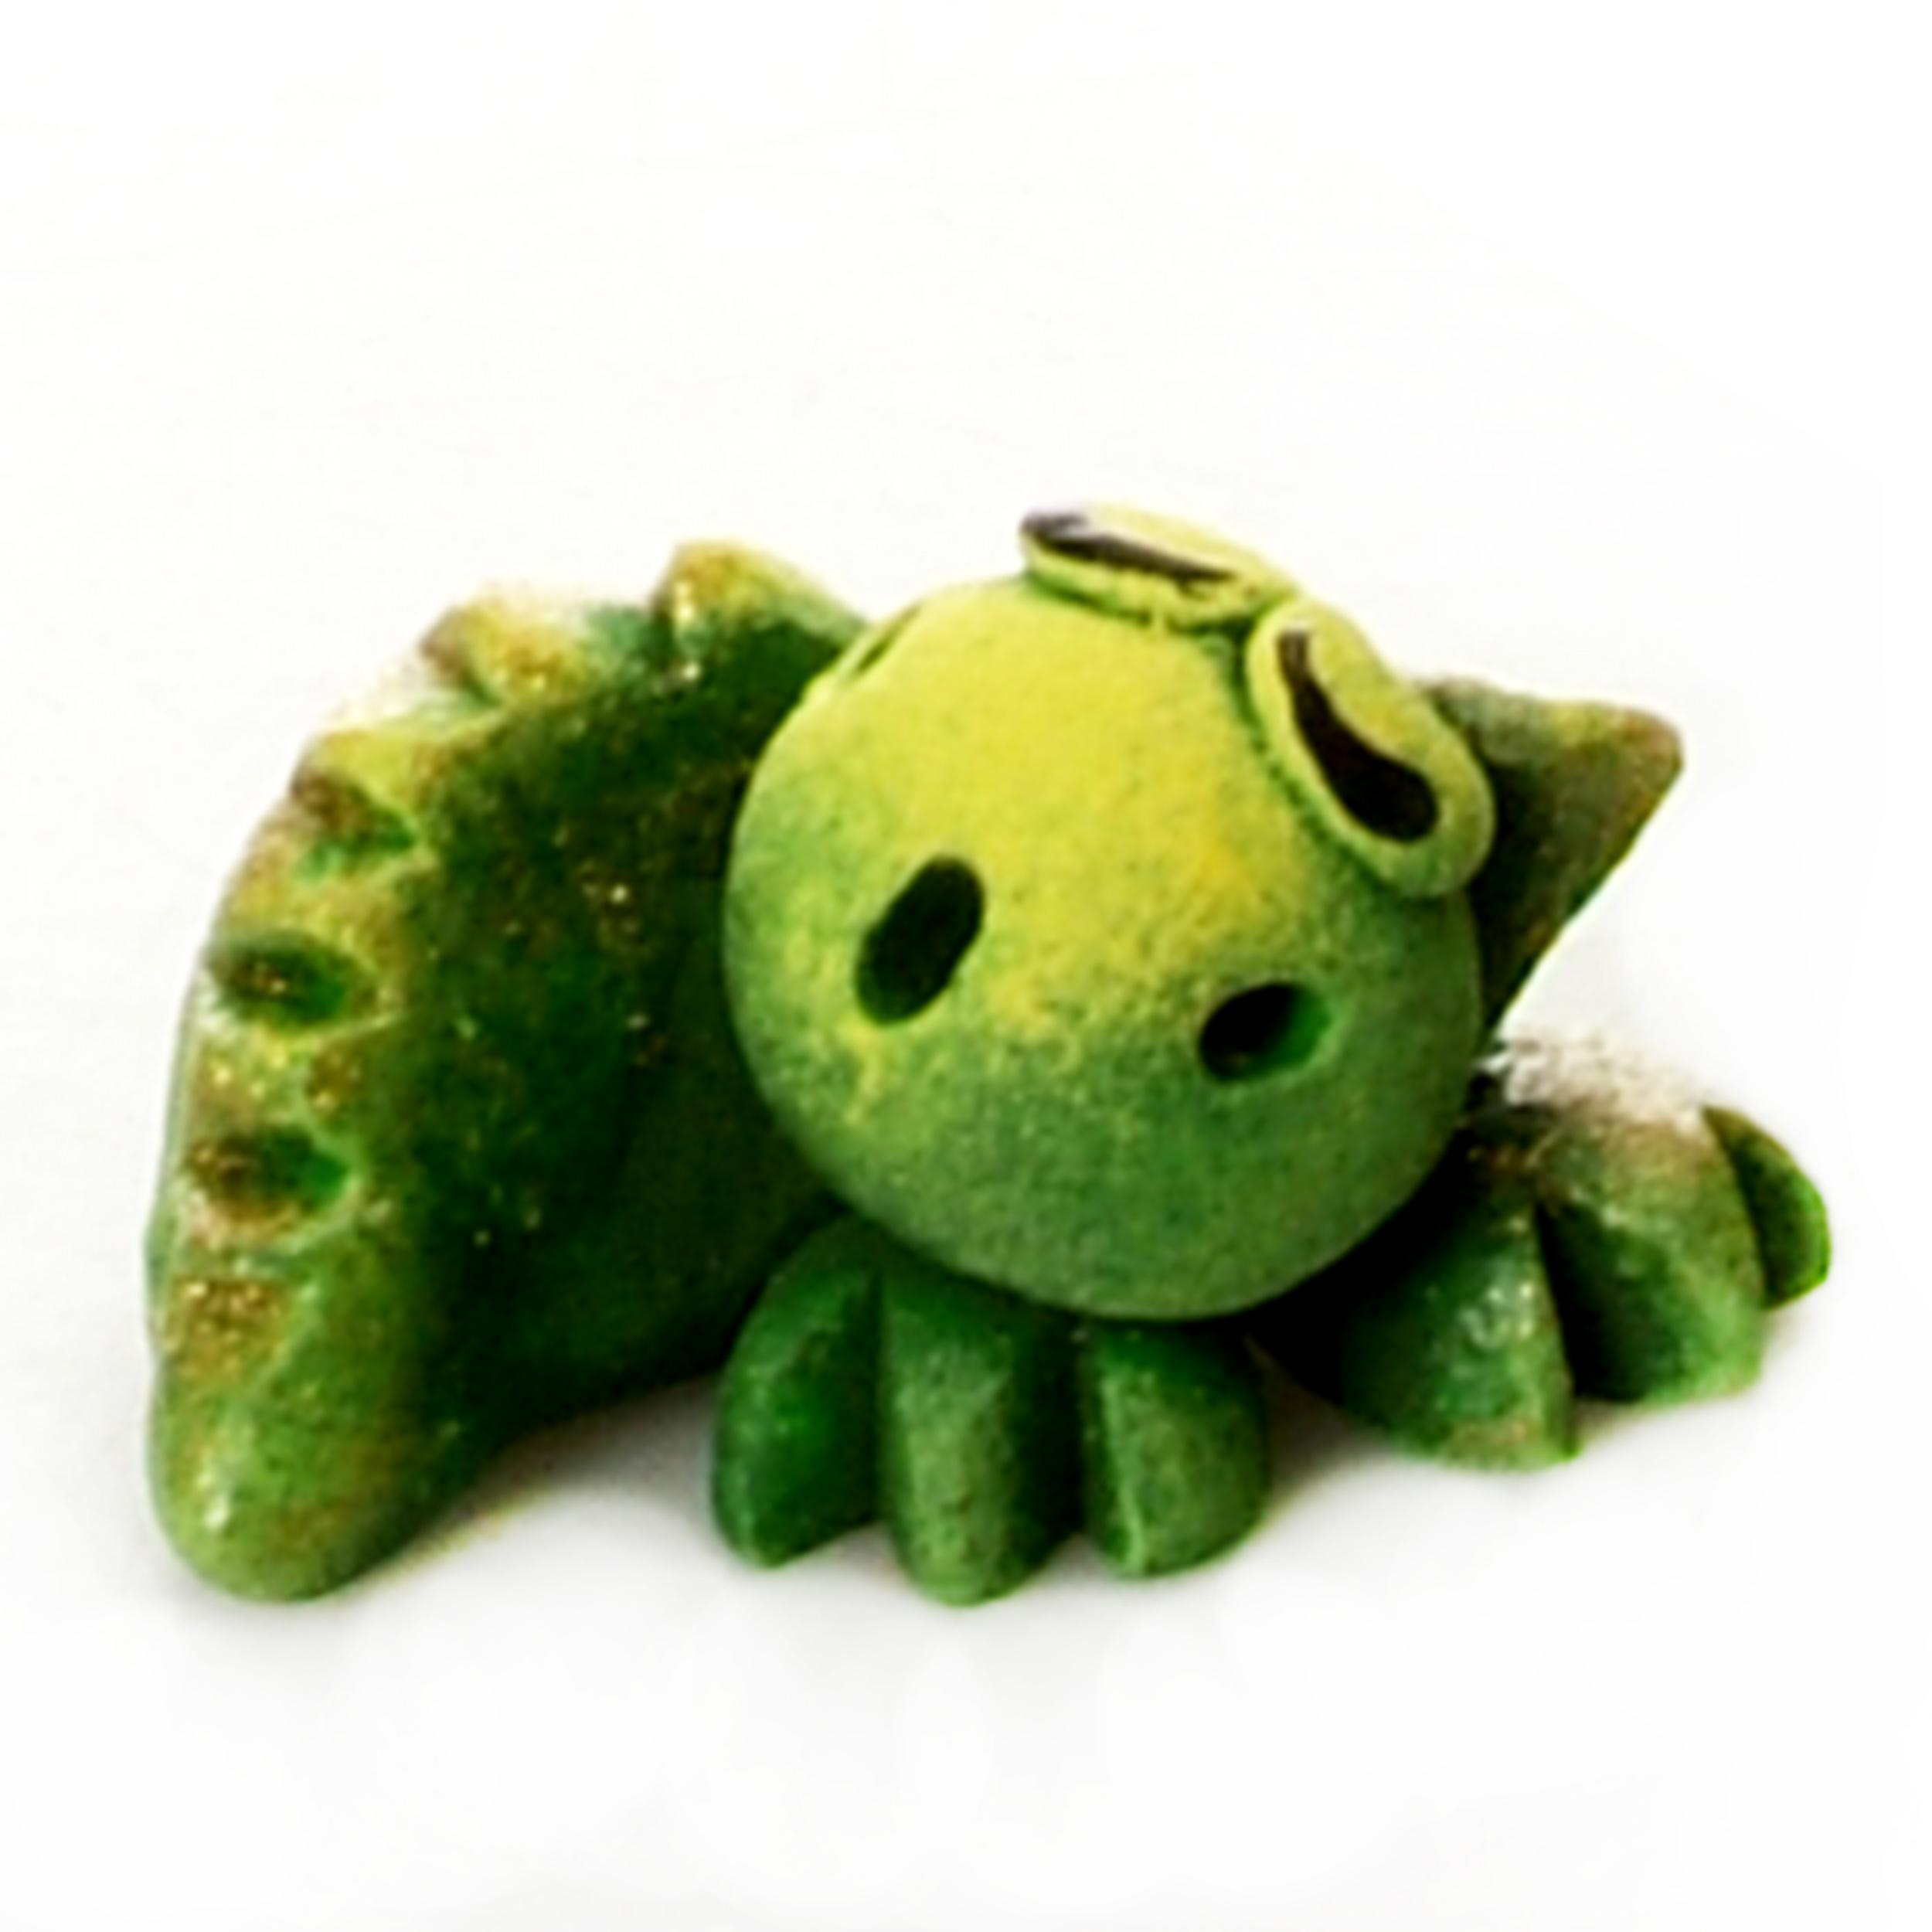 Pet in a Box | Ceramic Animal Gift for Kids | Sleeping Green Baby Dragon